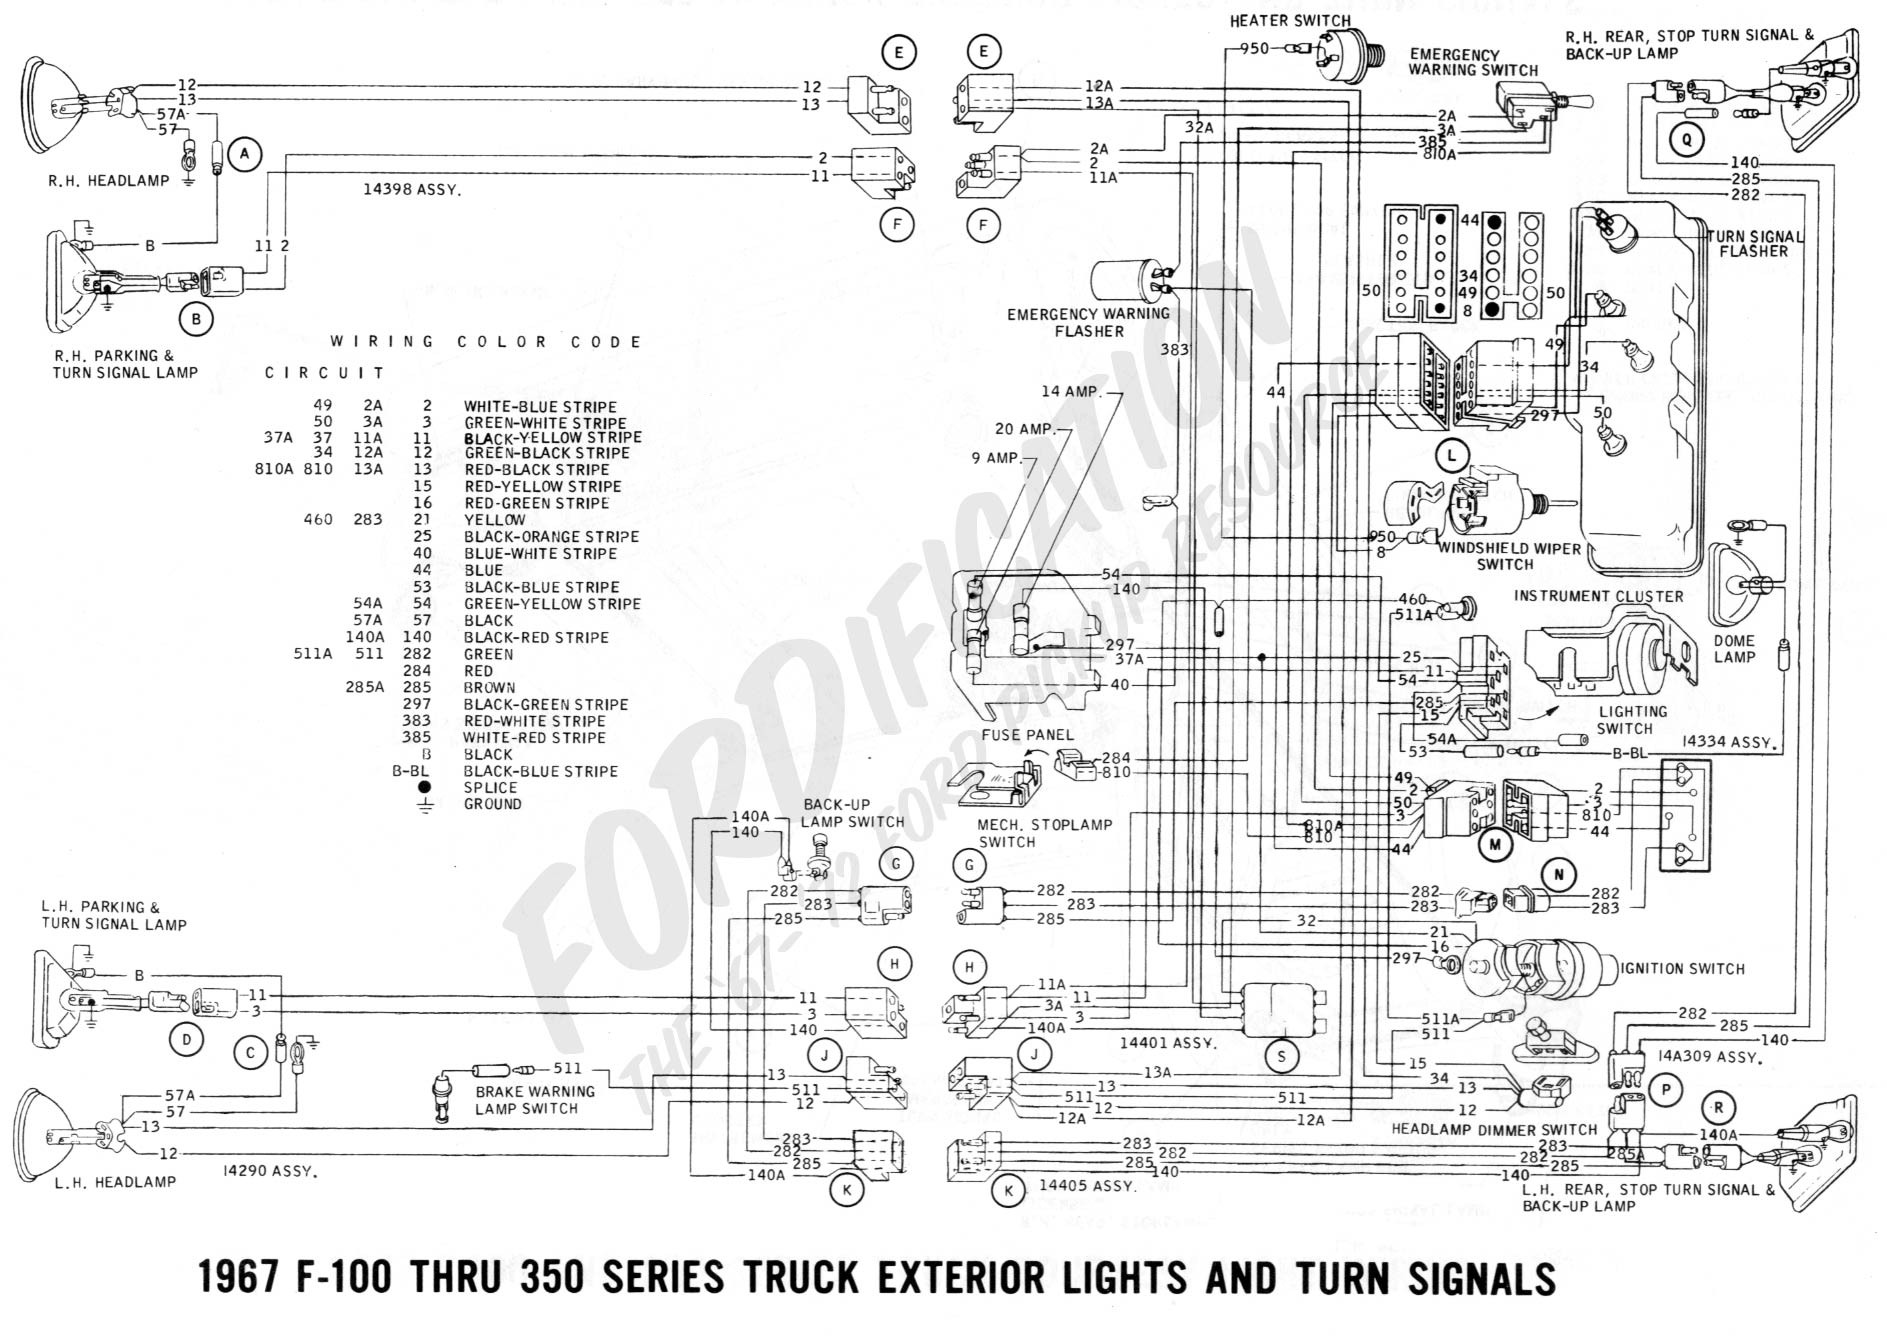 Motor Starter Wiring Diagram 1970 Torino | basic electronics wiring on 71 mustang starter circuit, 71 mustang ford, 71 mustang fuel pump, 71 mustang relay, 71 mustang clock, 71 mustang welding diagram, 71 mustang door, 71 mustang wheels, 71 mustang radiator diagram, 71 mustang engine, 73 mustang starting circuit diagram,